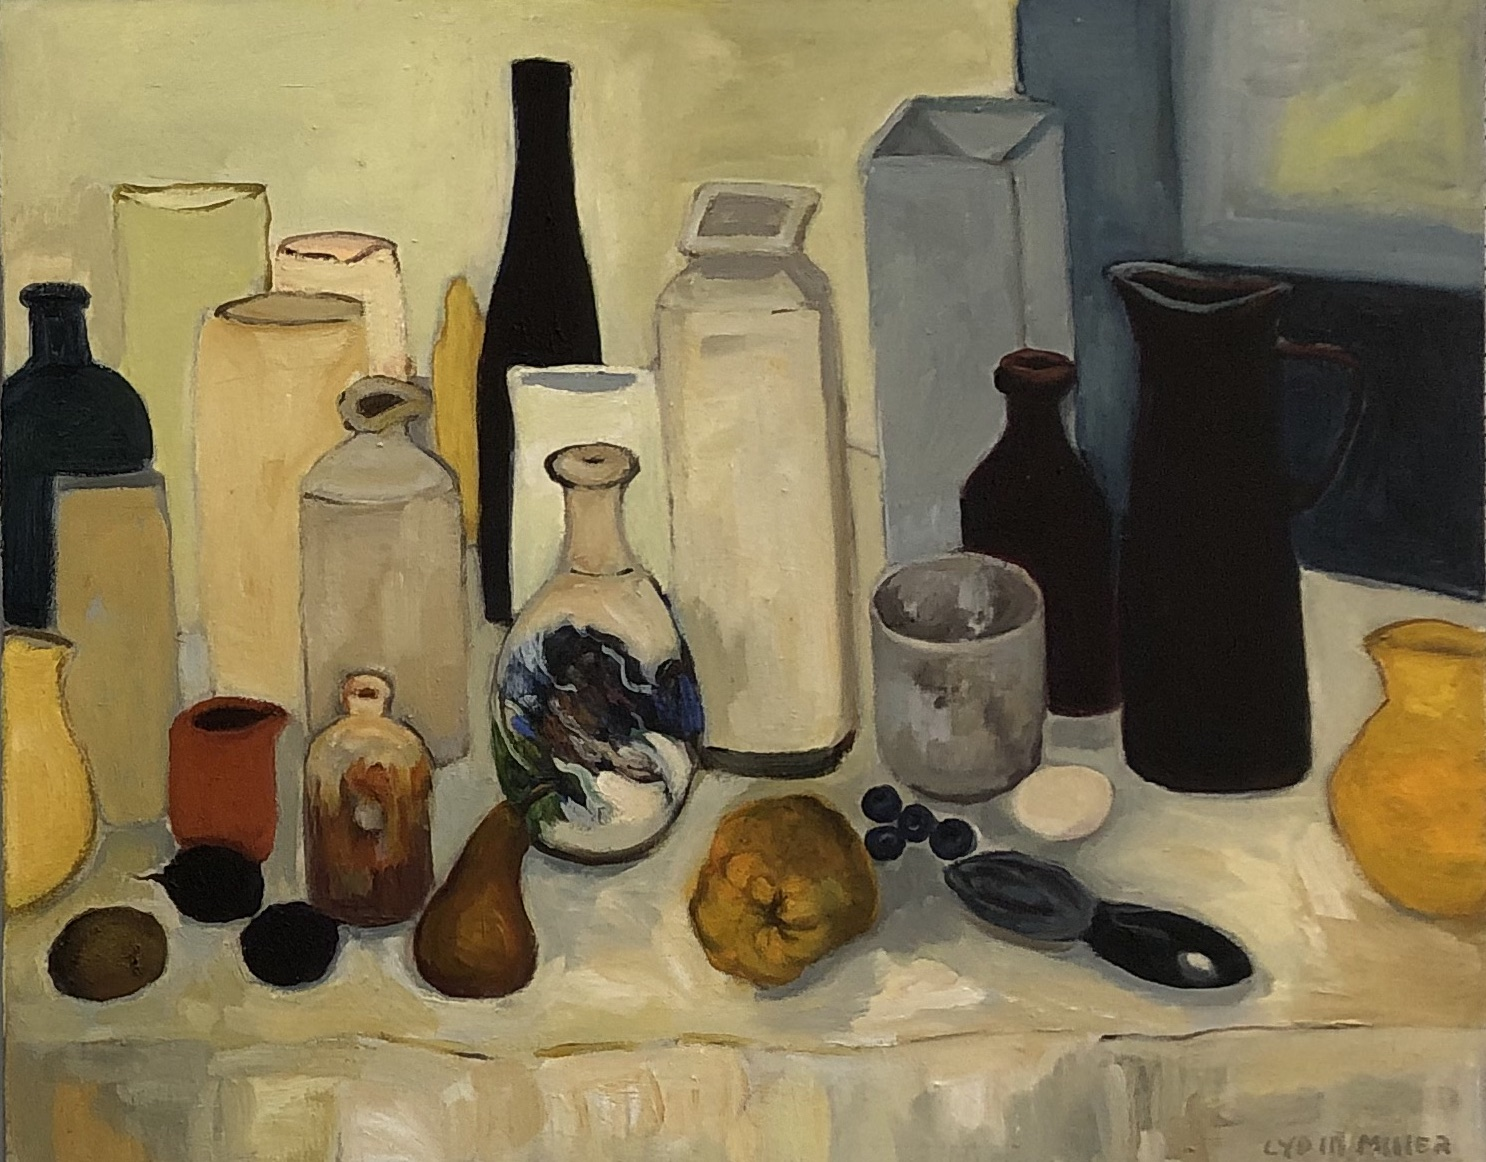 Lydia Miller Still-Life with vase 2018 oil on canvas 62 x 76cm $850.00 AVAILABLE through A.K Bellinger Gallery